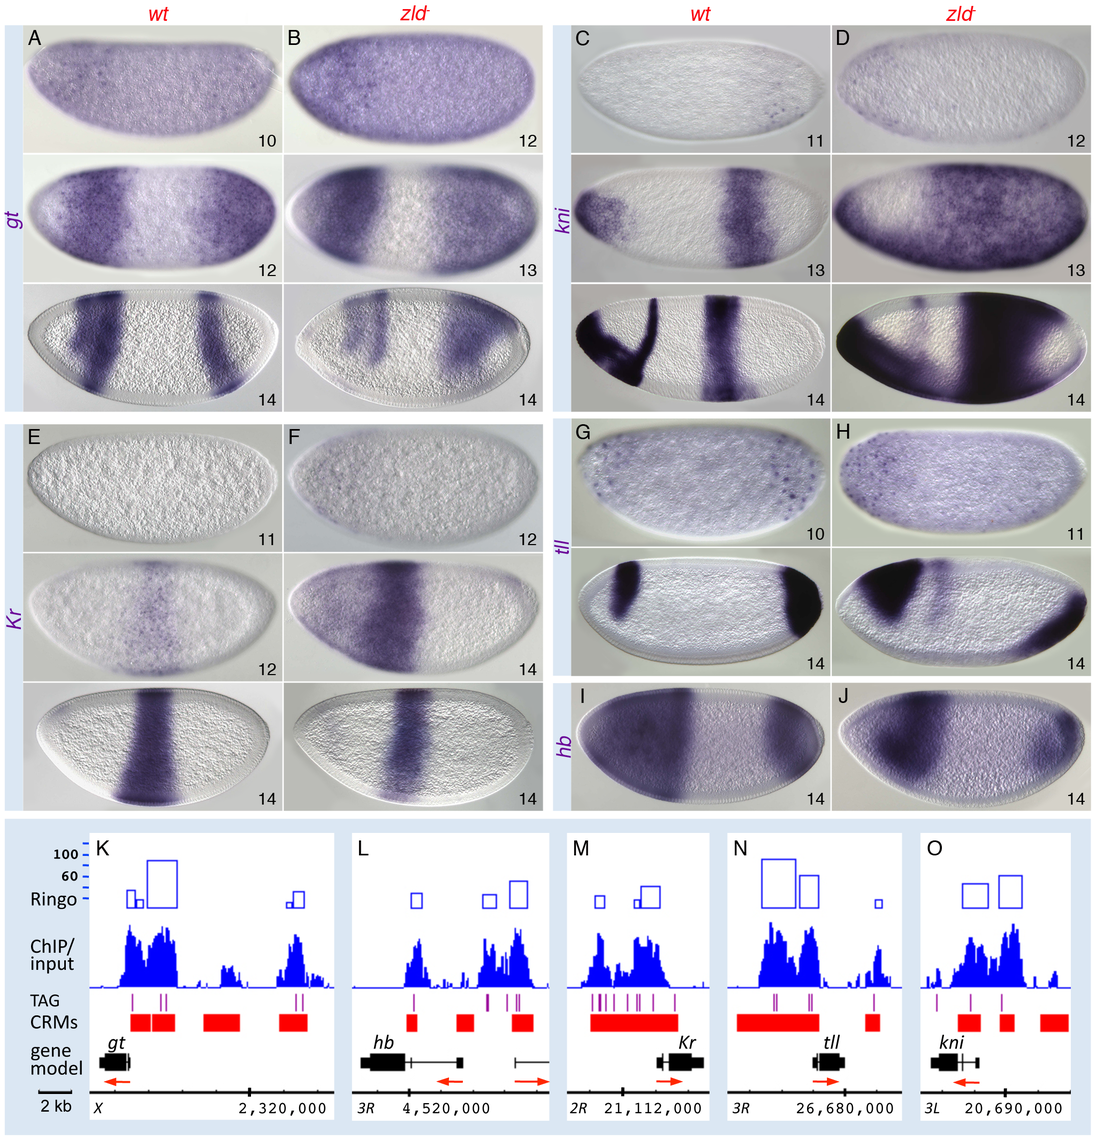 Zld regulates timing within the gap gene network.